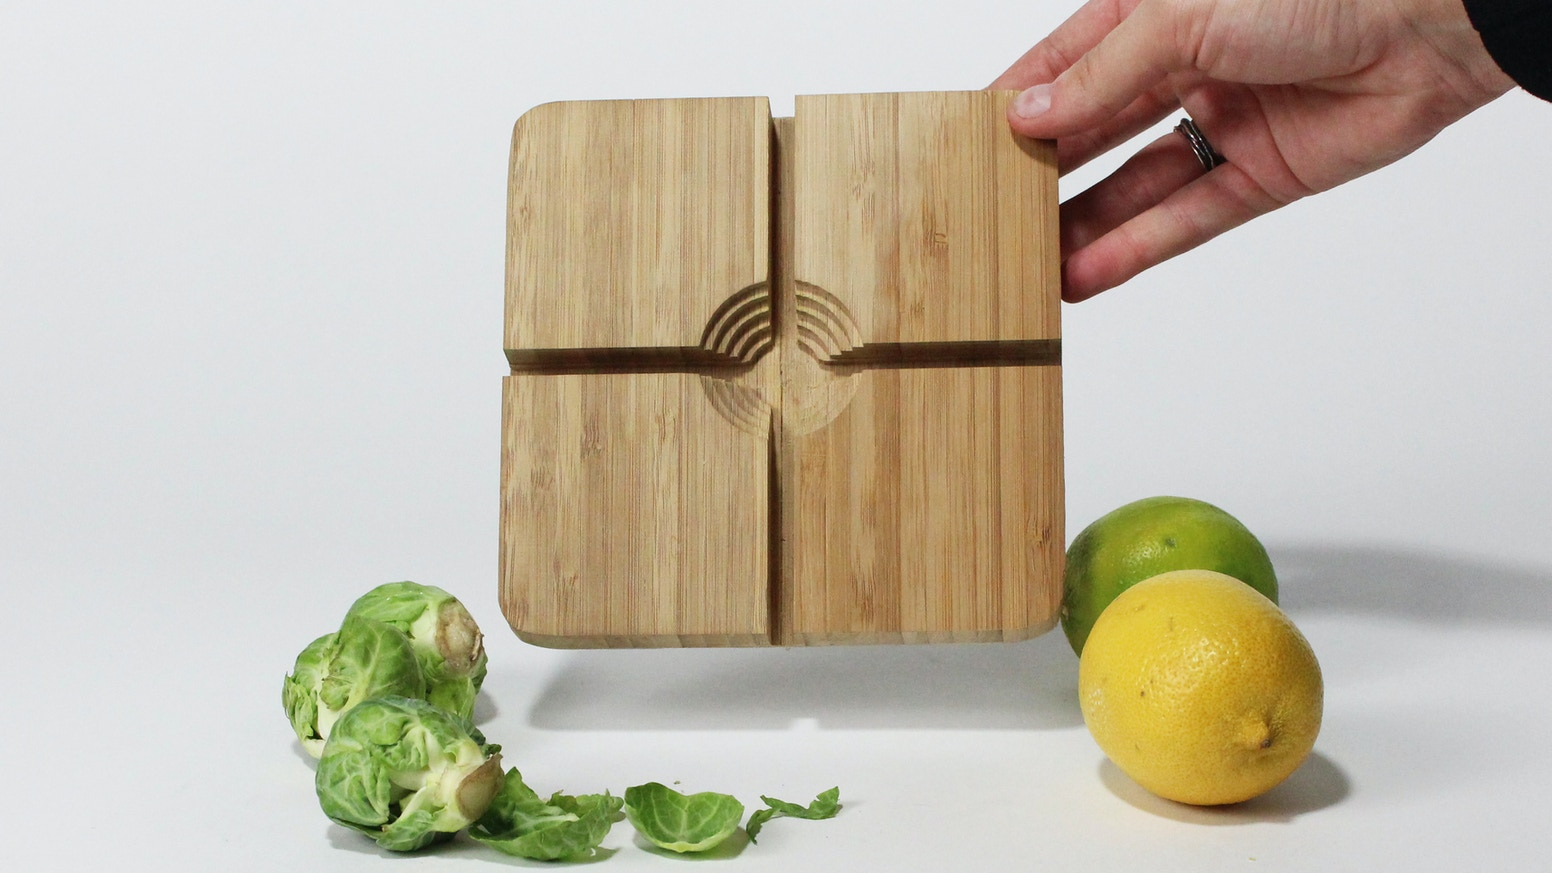 B. Sprout 2000 is a one of a kind cutting board designed to allow users to safely cut brussels sprouts and other small vegetables.